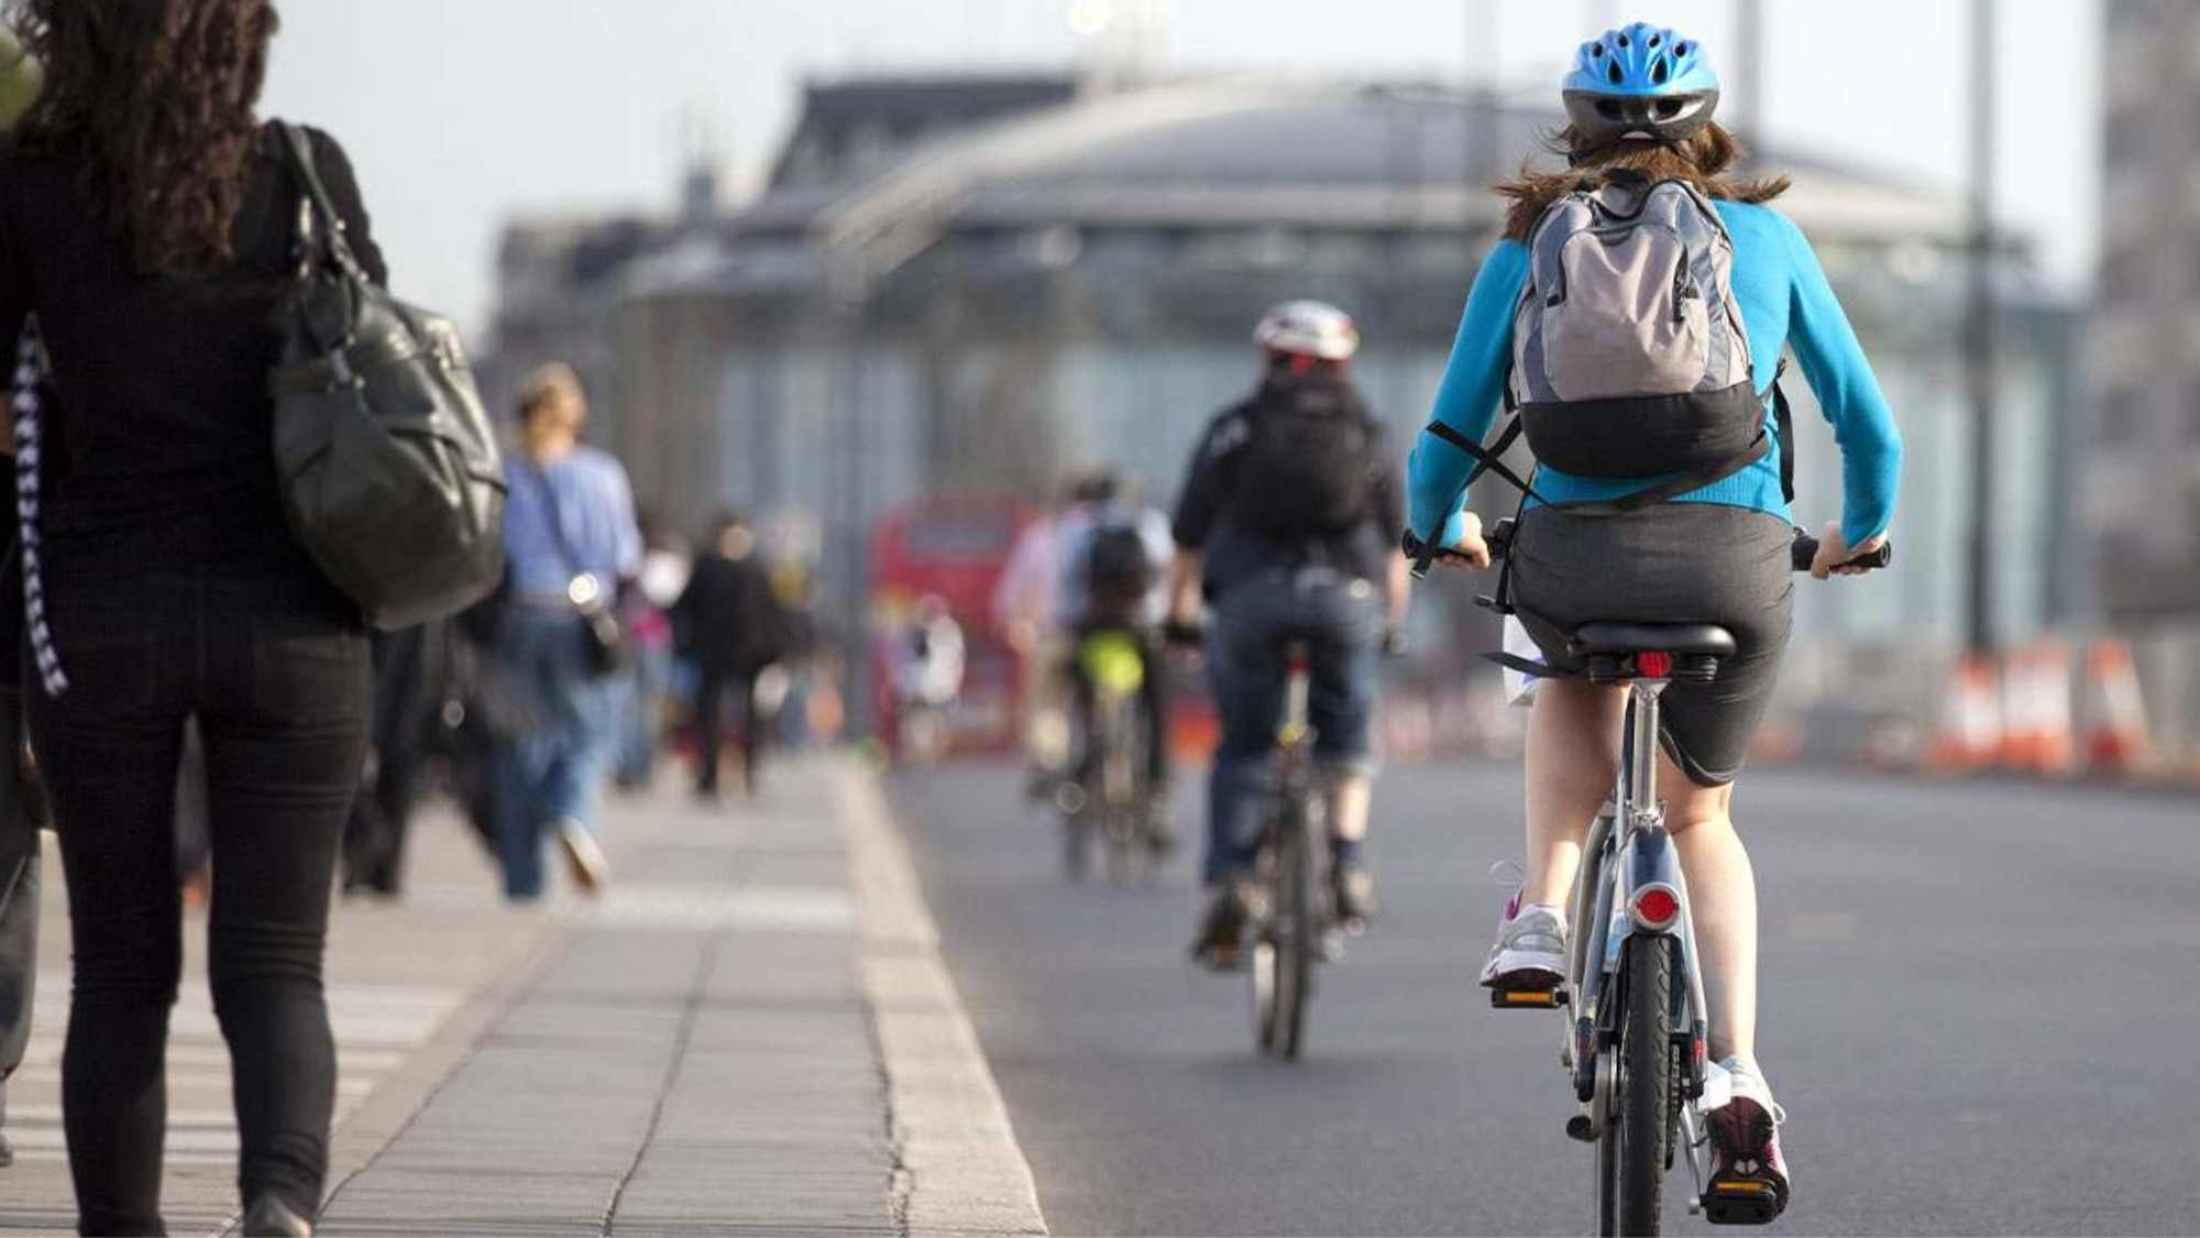 Woman wearing blue top and blue helmet cycling towards central London